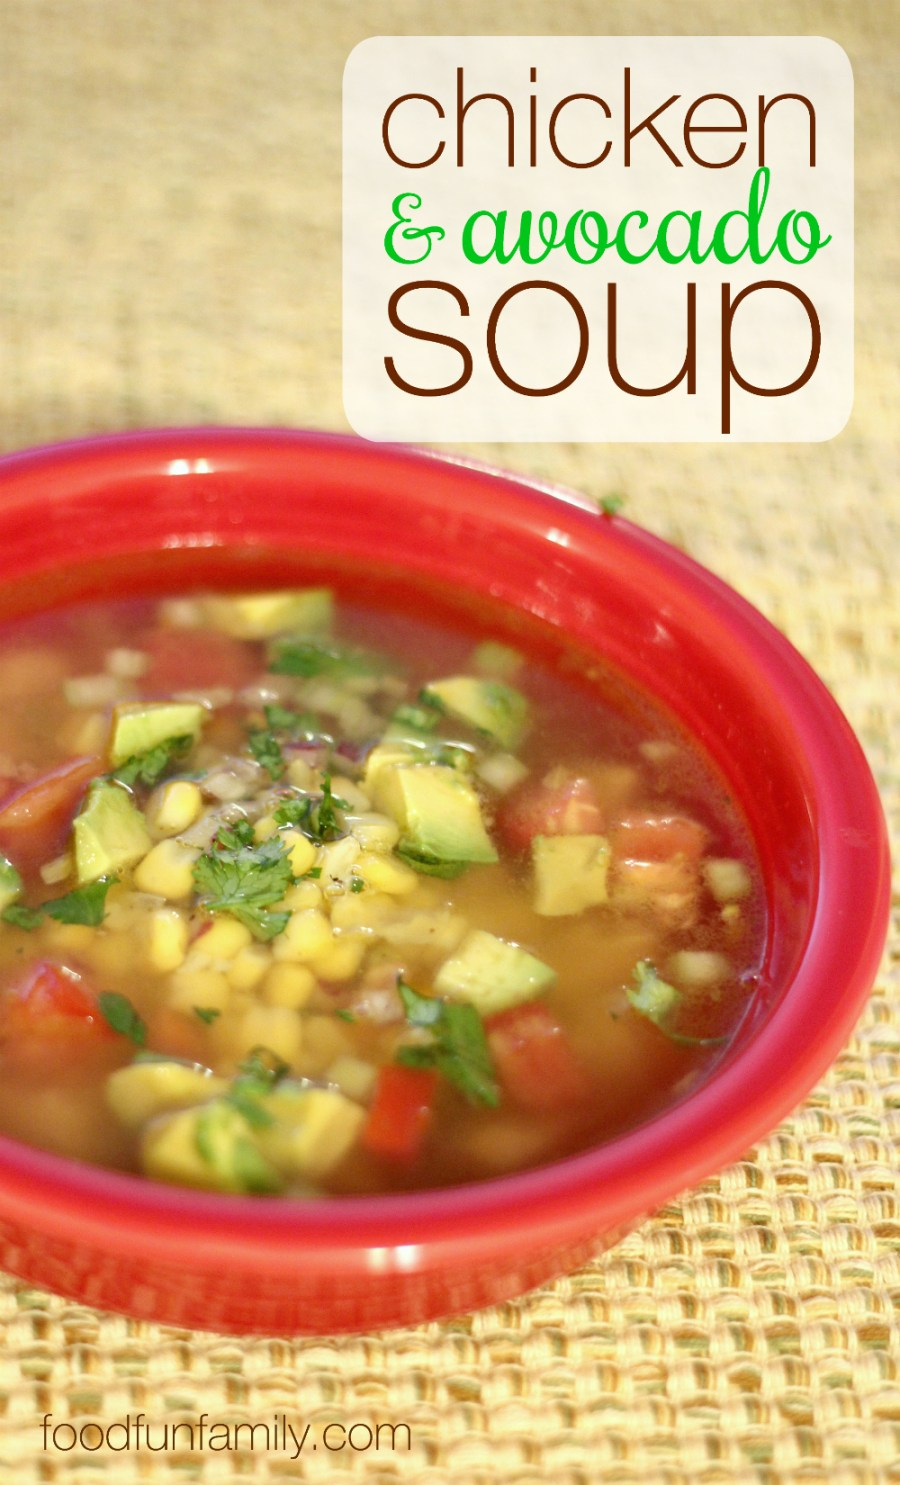 Looking for a tasty variation on the classic chicken noodle soup? Trade your noodles for toritillas and dig into a bowl of this chicken and avocado soup. Full of fresh, vibrant flavors!